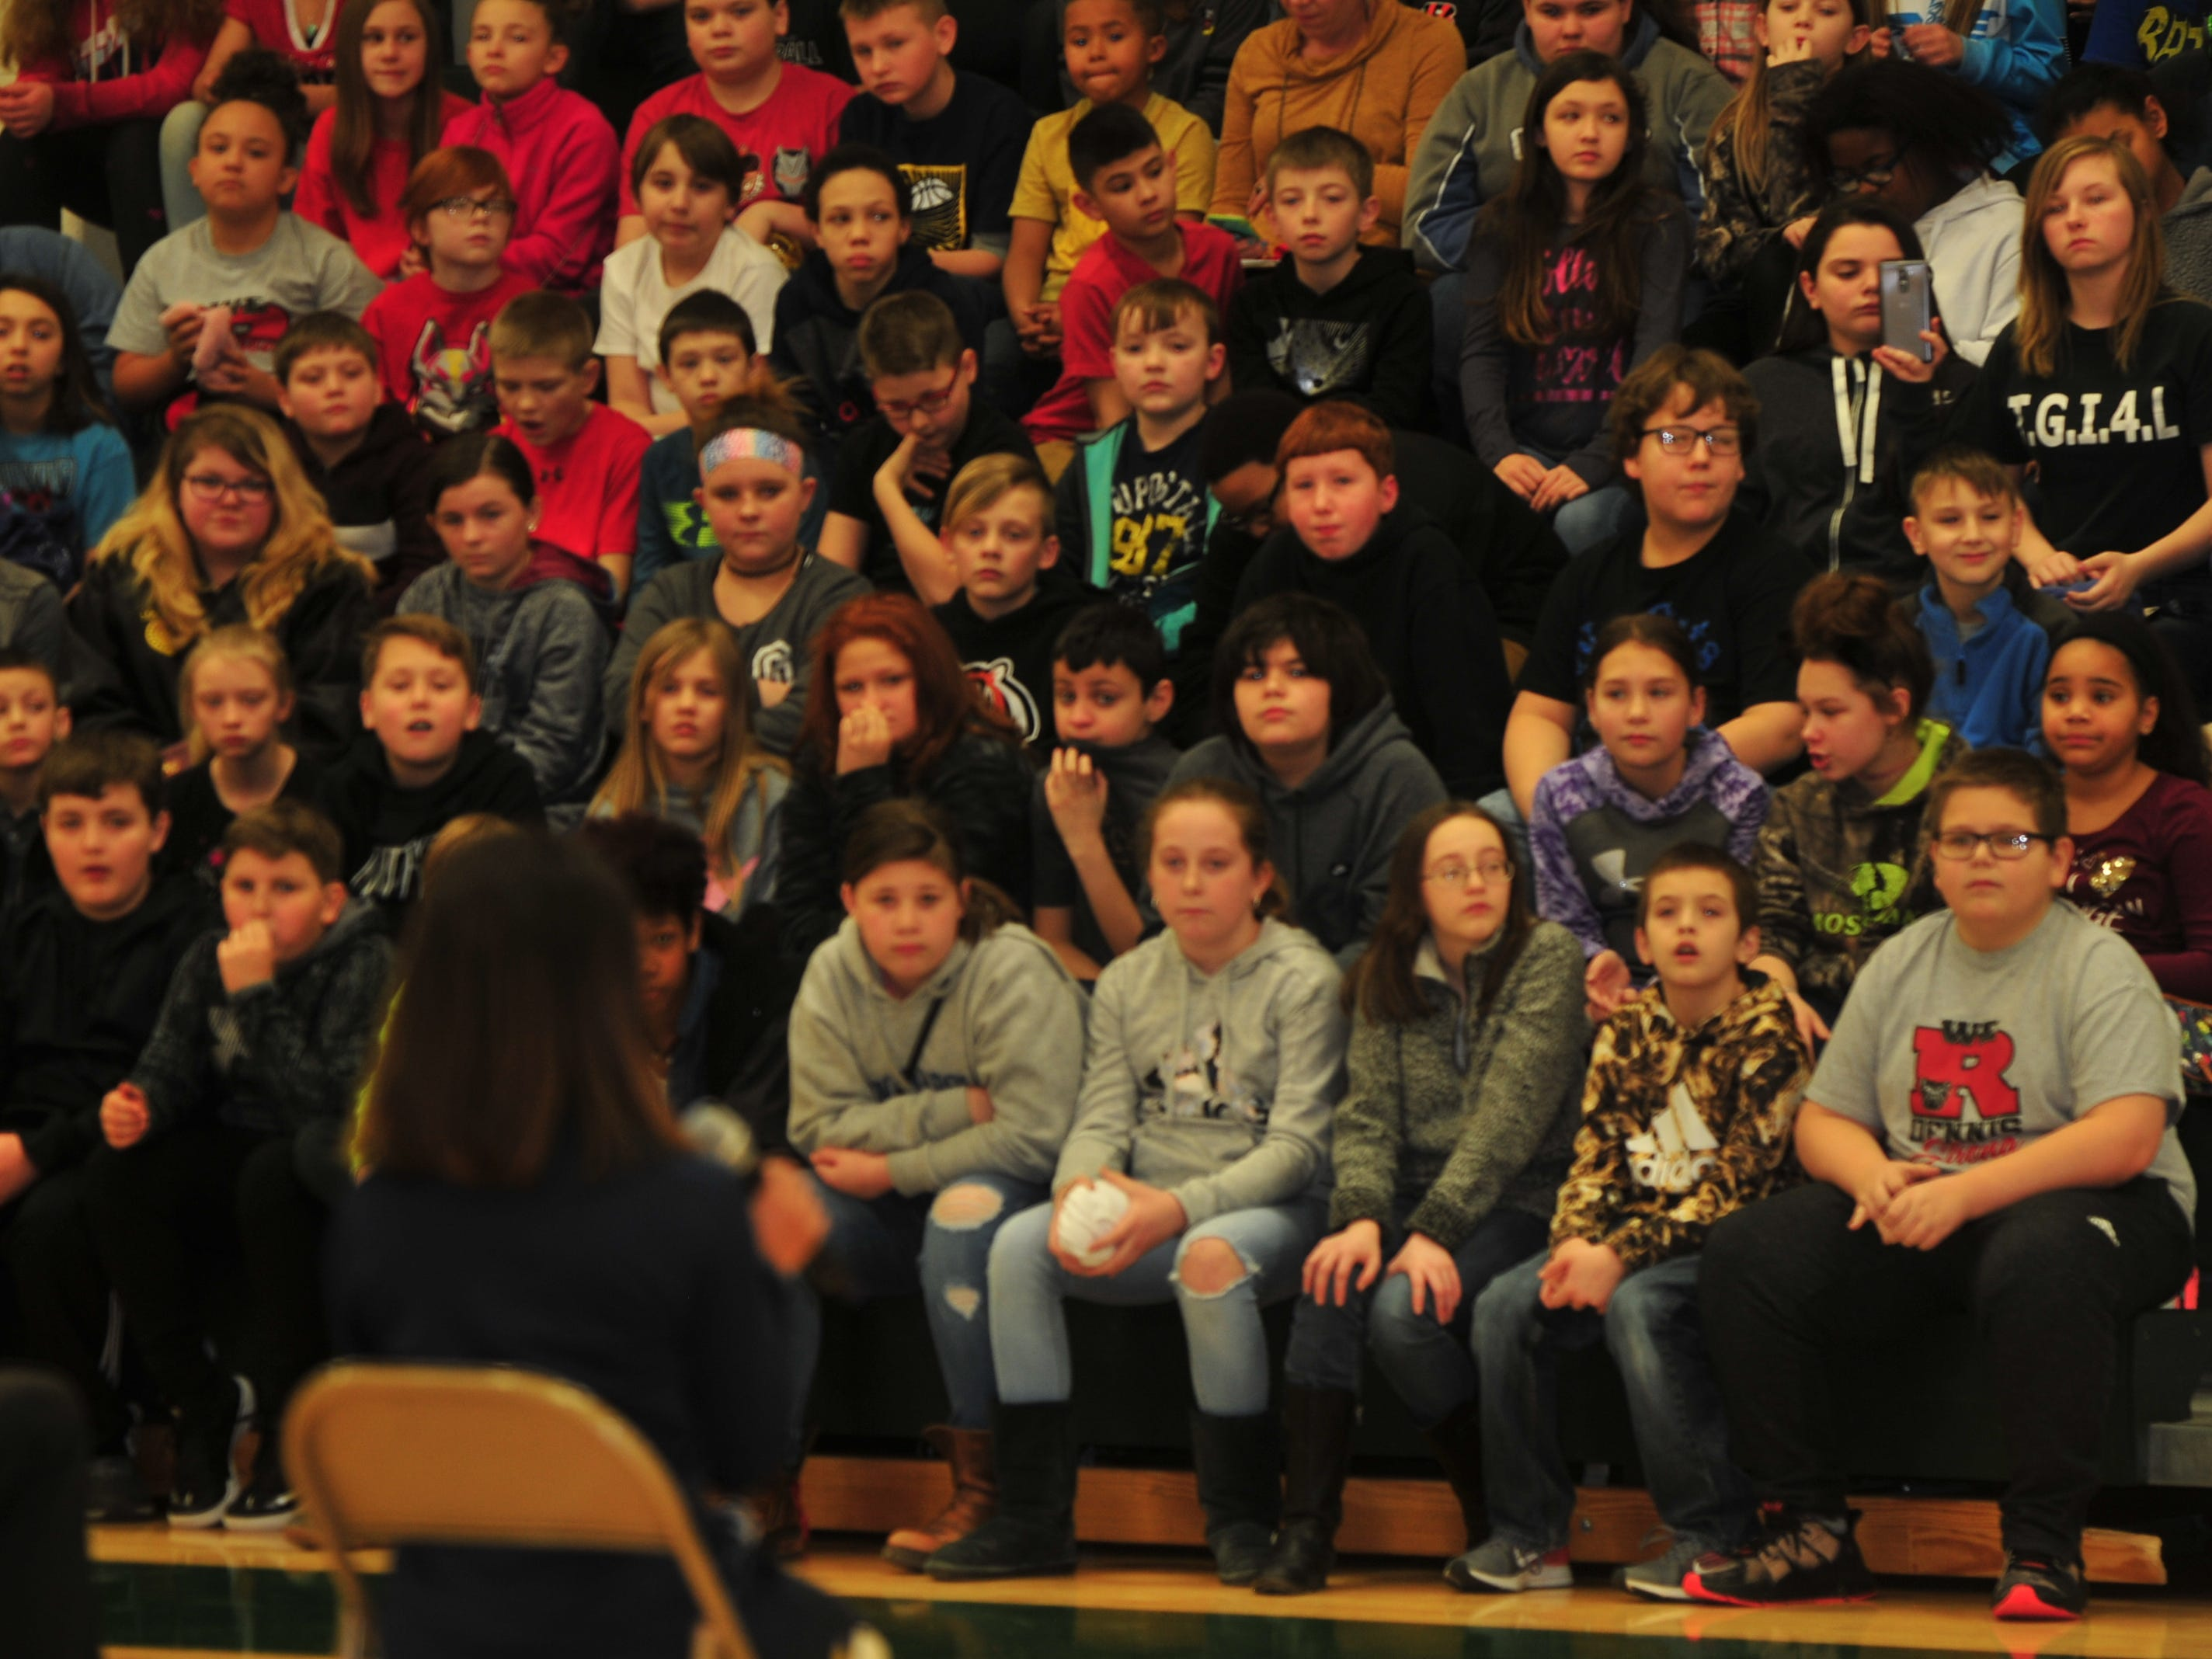 Dennis Intermediate School students listen as Pacemate Shania answers a question Wednesday.